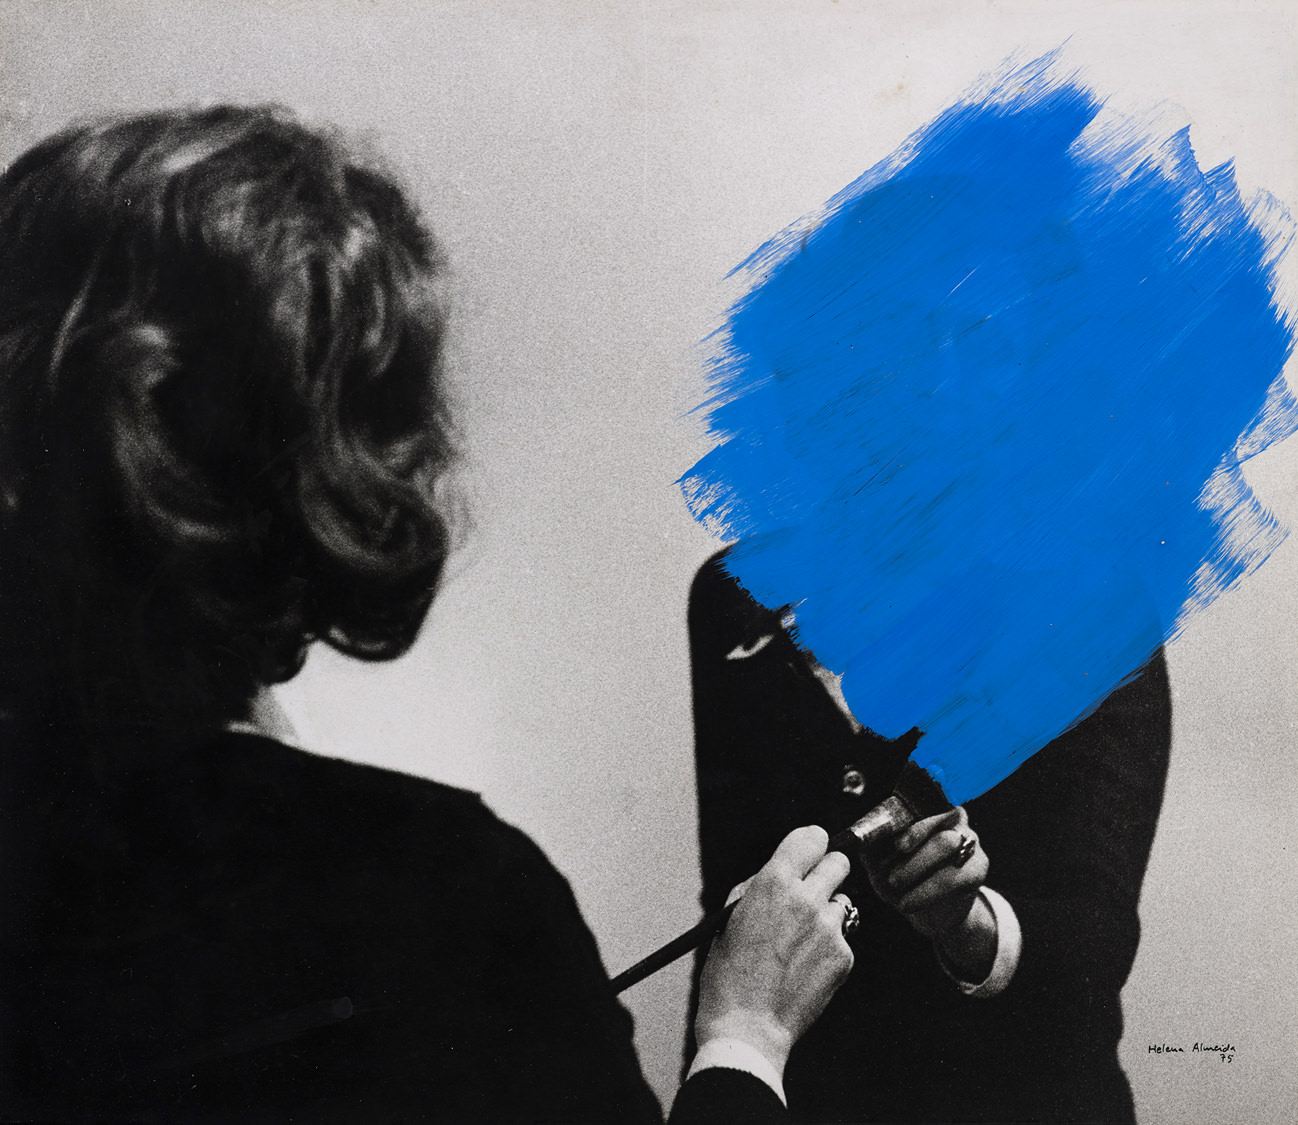 """Pintura habitada(Inhabited painting), 1975.  Seen as one of the most important contemporary Portuguese artists, although barely known in France, Helena Almeida has come to be recognised as a major player of performance art and on theconceptual art scene of the 1970s.  Photography, drawing, painting, video… Almeida's work is as rich as it is complex. By combining genres she's established an artistic code that is both universal and personal: her body becomes a body, private becomes public, her movements a collective dance. Between self-hate and dissimulated narcissism, """"Corpus"""" redefines the frontiers of introspection.    Helena Almeida, """"Corpus"""", from February9th to May 22nd 2016,Jeu de Paume, Paris    By Clara Blanca."""